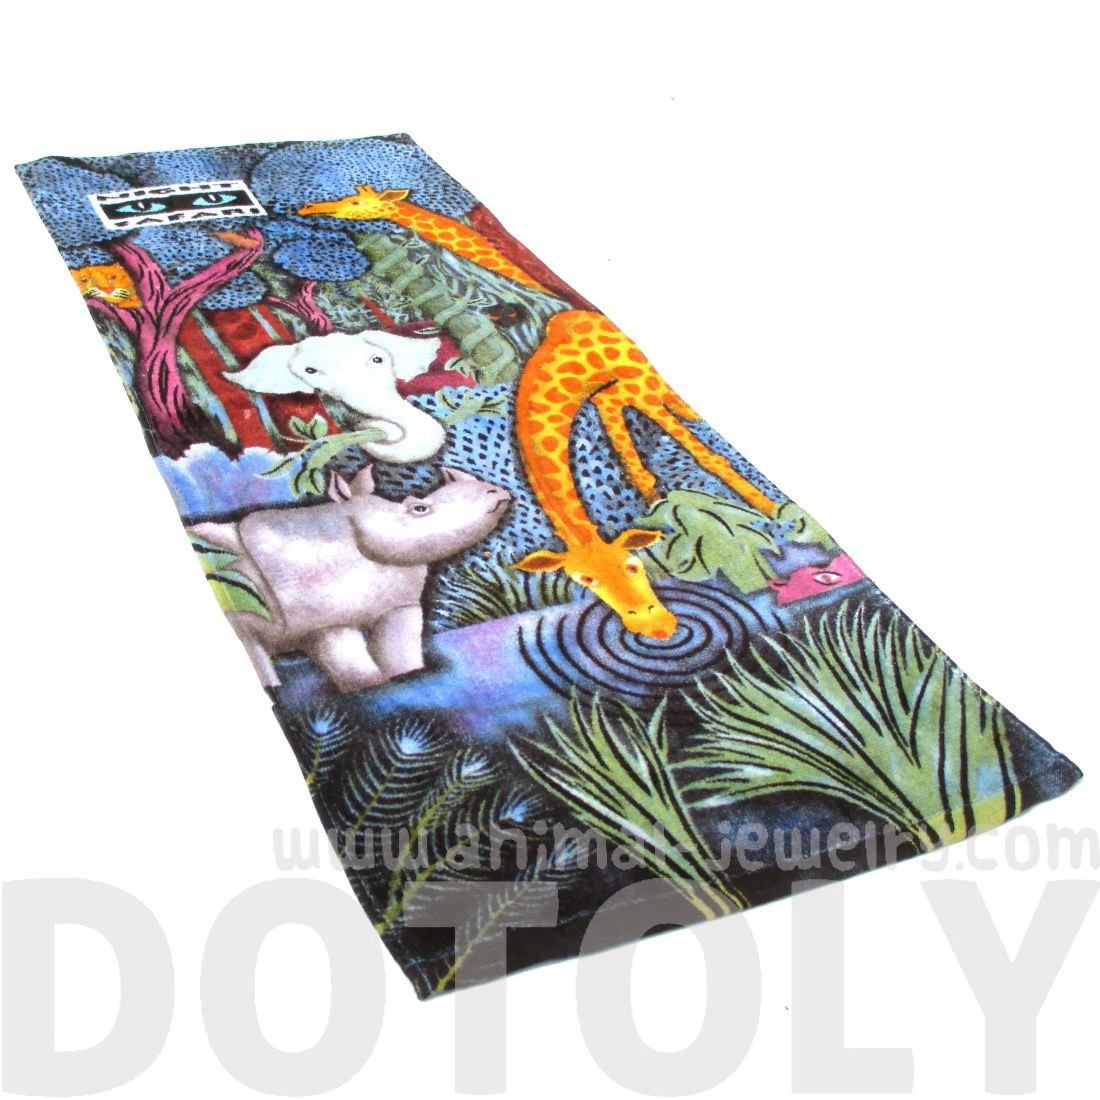 Animal Zoo Night Safari Elephant Giraffe Rhino Collage Print TowelAnimal Zoo Night Safari Elephant Giraffe Rhino Collage Print Towel